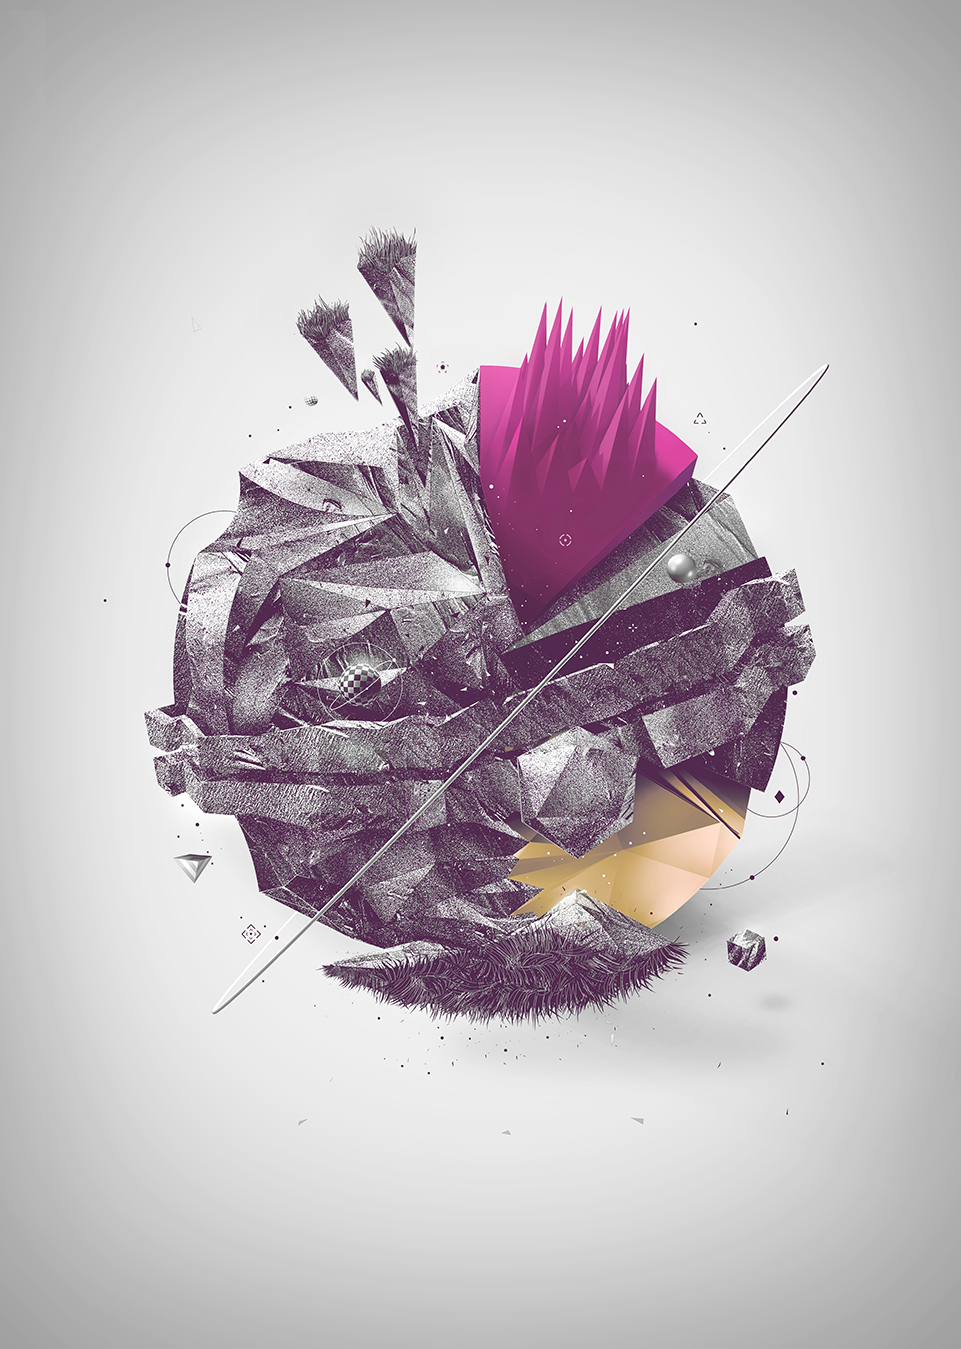 Amazing Art Design : Amazing graphic design works by rogier de boeve